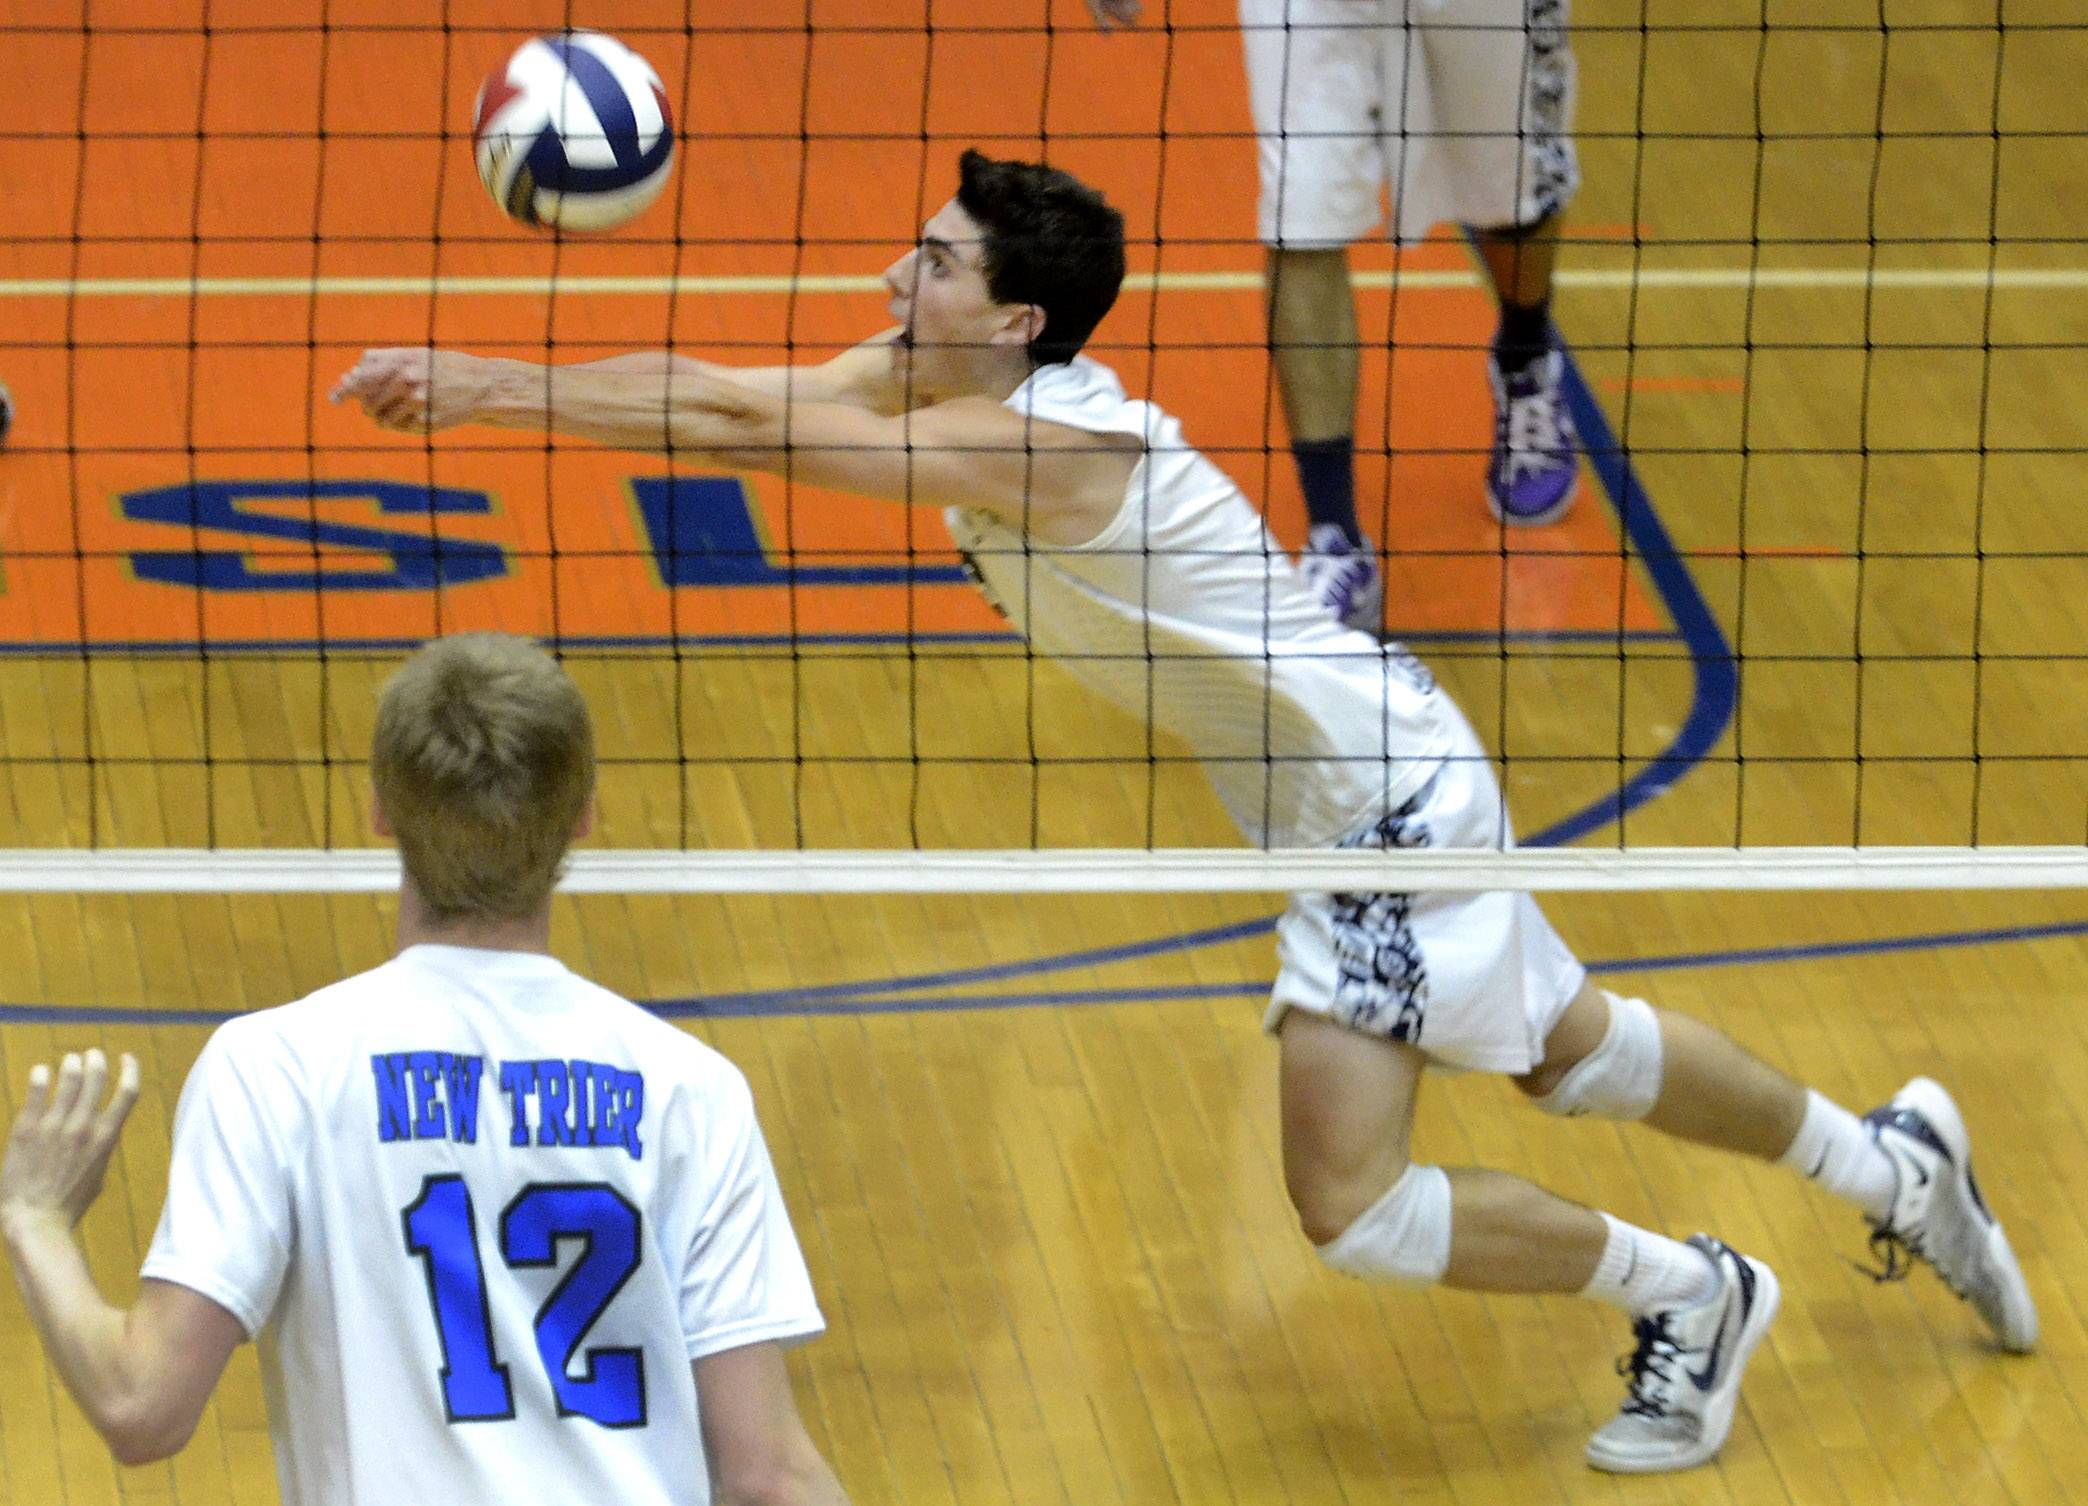 Lake Park's Anthony Amore makes a save during the boys volleyball state tournament quarterfinal against New Trier on Friday.